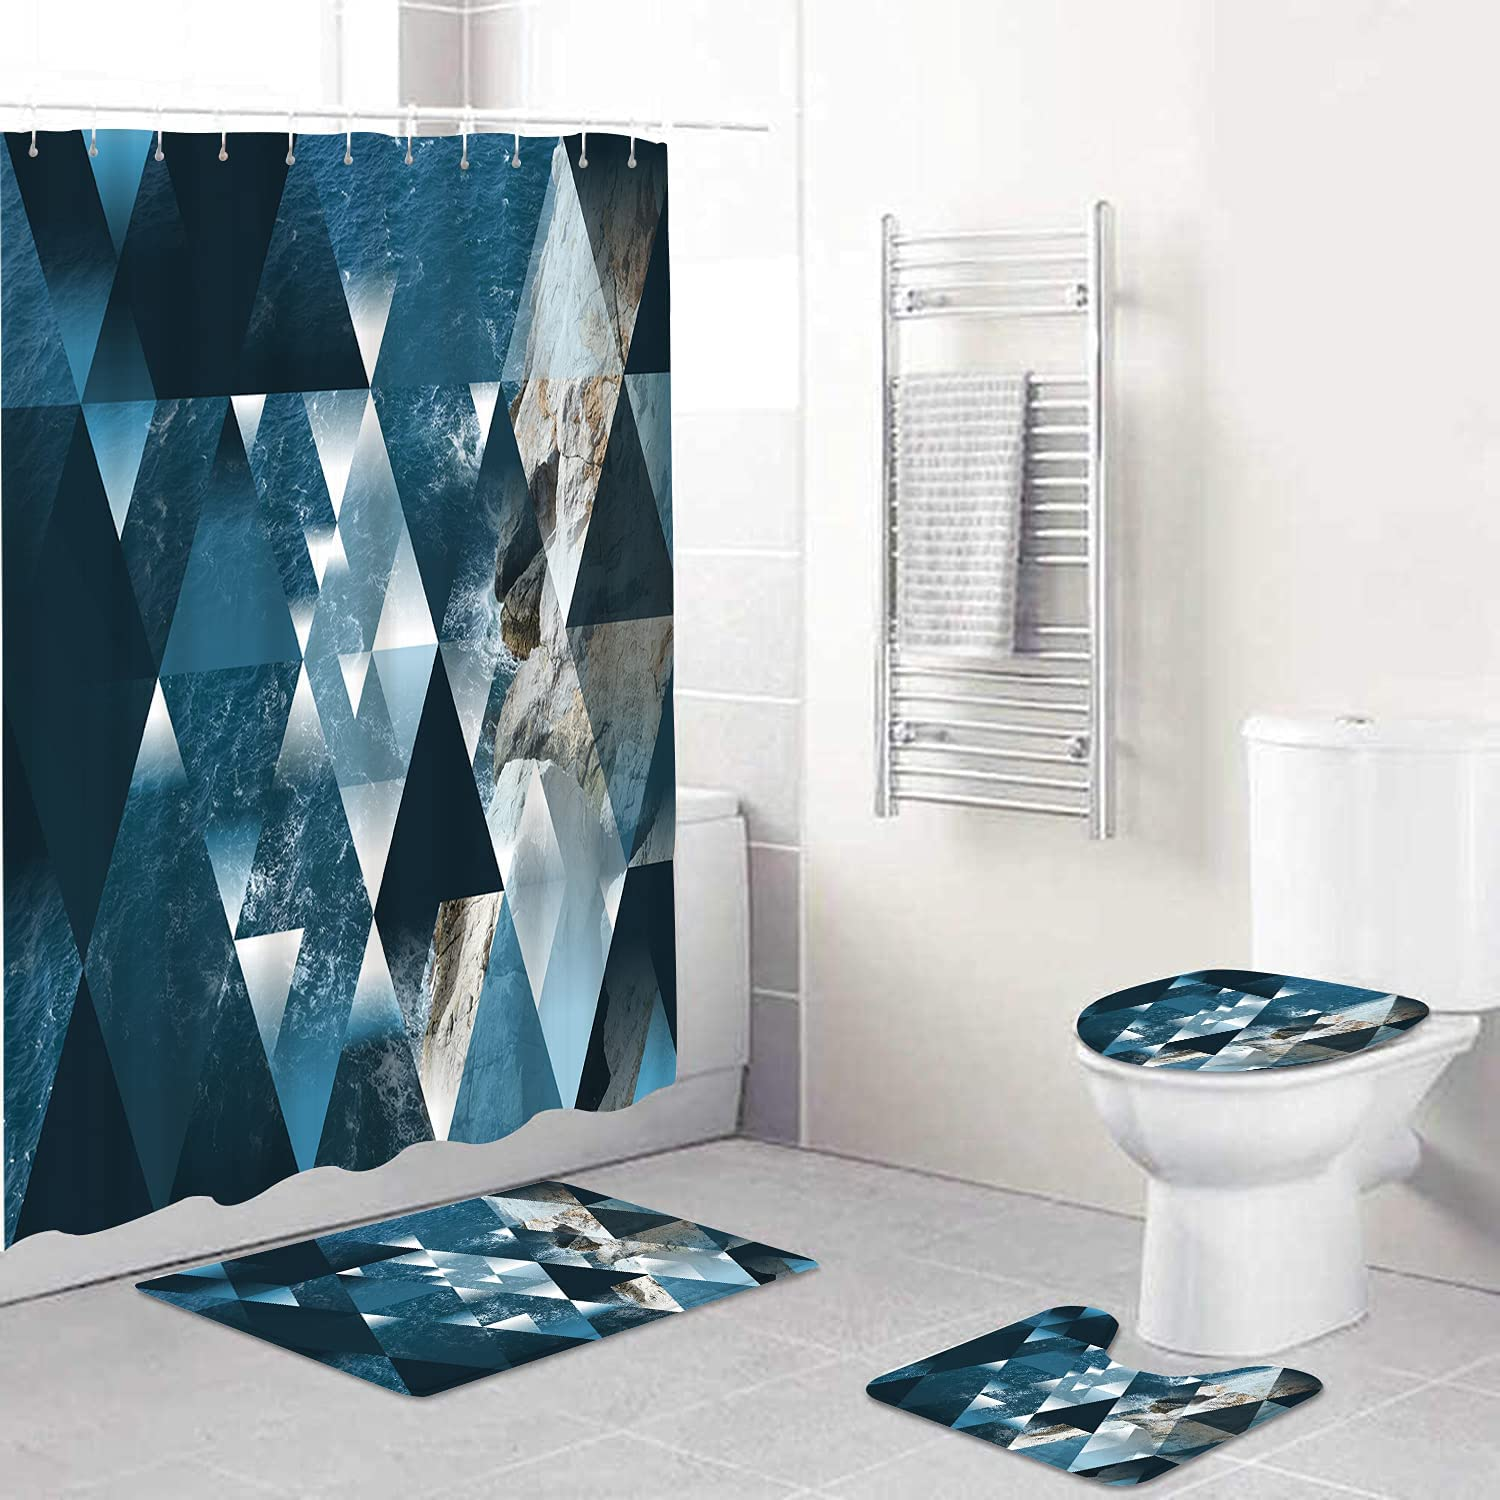 OPMLISIR 4 Pcs Shower Curtain Sets with Non-Slip Rugs Selling and selling Toilet Max 86% OFF Lid